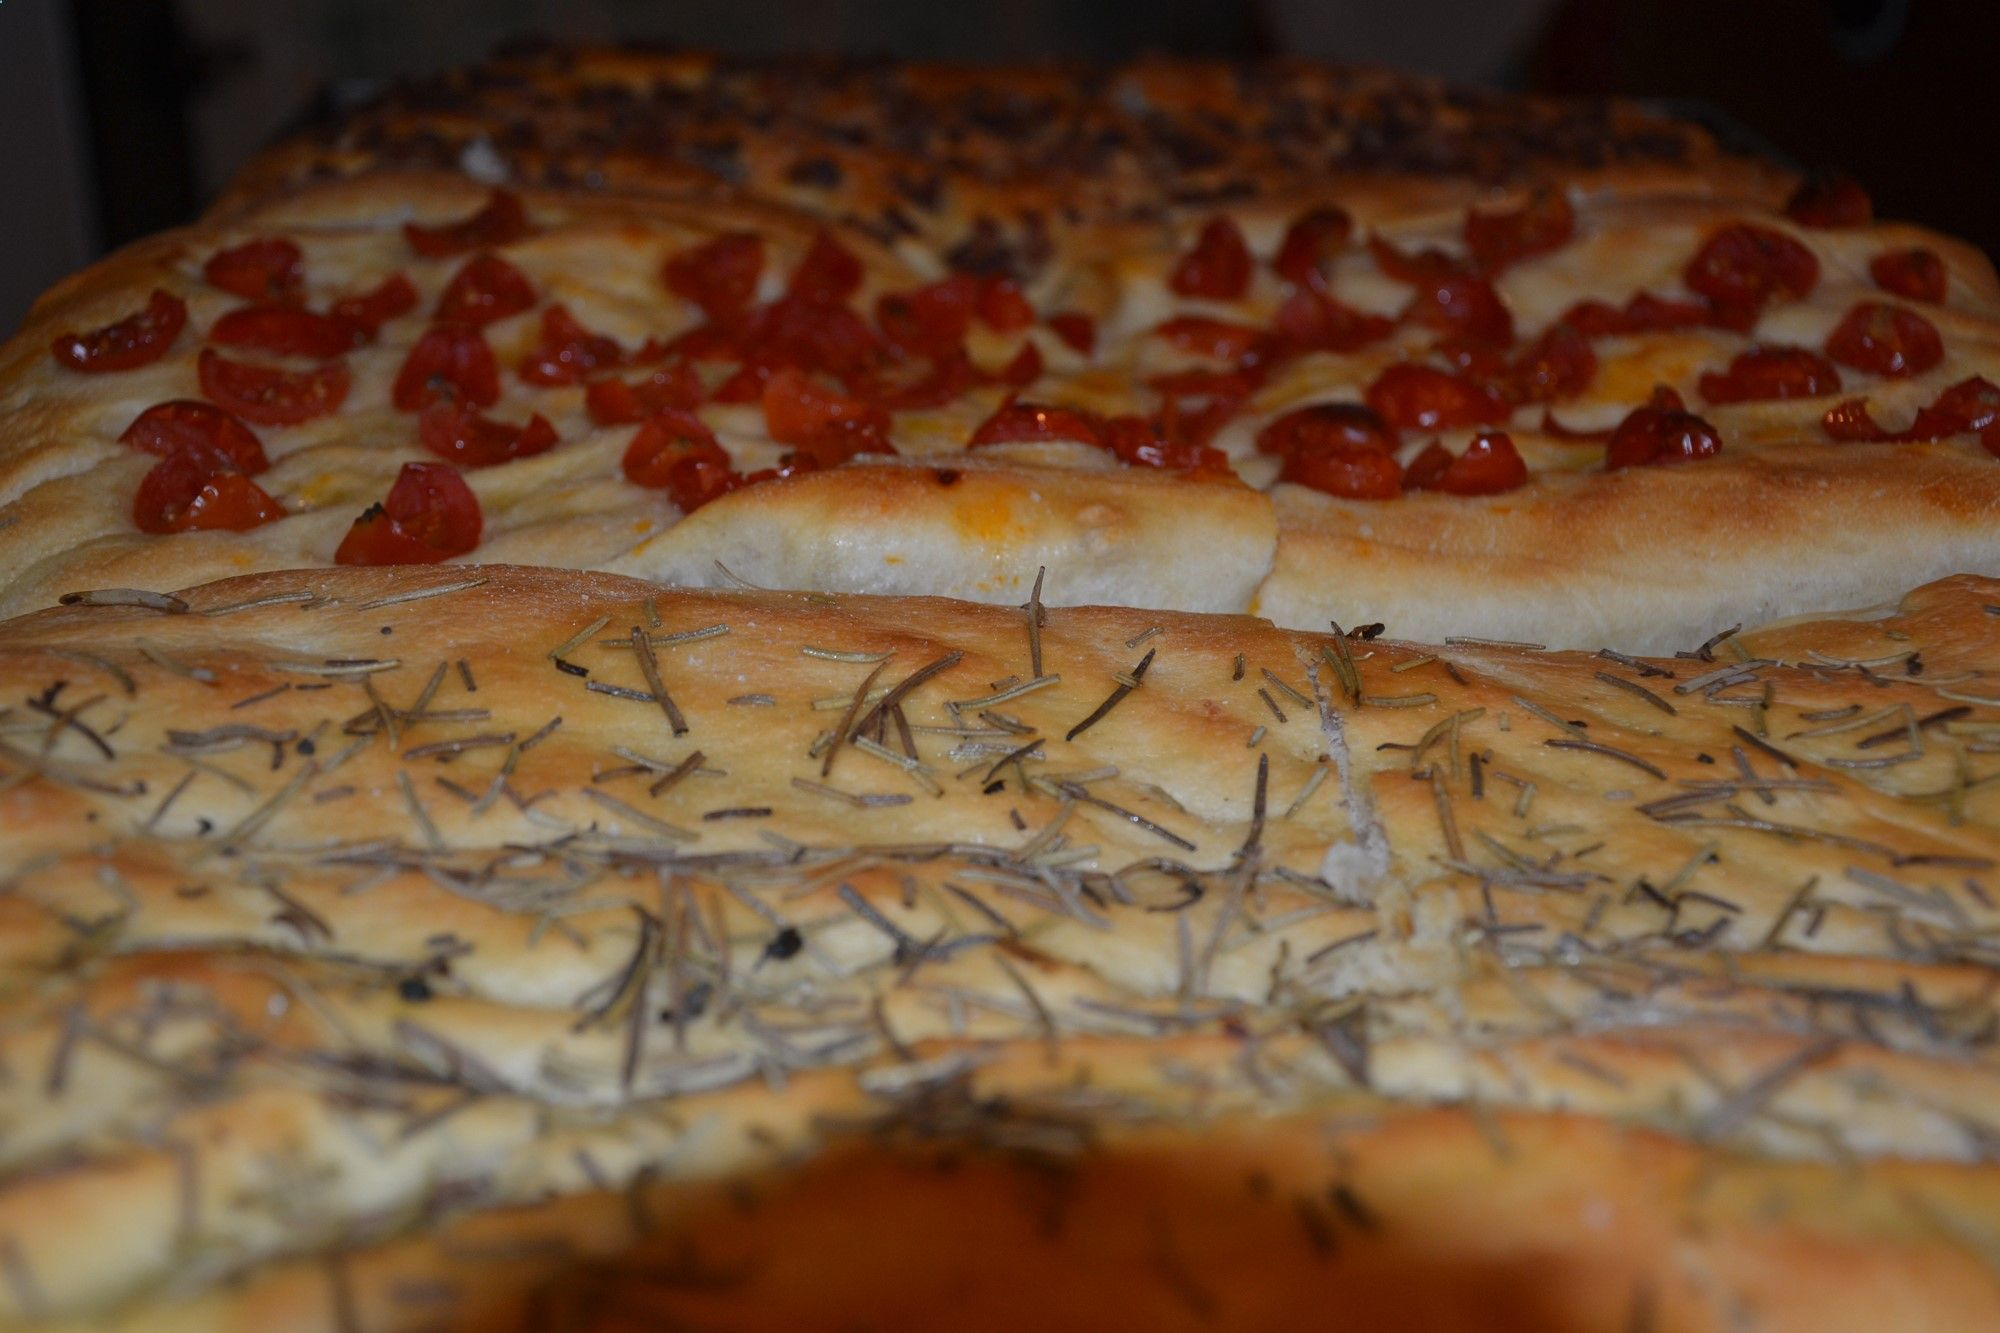 ADLER FOCACCIA - by Chef Gaetano. Mix 550 gr semolina, 200 gr wheat flour 0, 0.6 l water, 25 gr salt, 1 cube of yeast (22 gr), 35 gr olive oil, be careful to keep salt and yeast separated: Add them separately, mix before adding the second. Let them rise for 30 min. Knead and form into focacce. Place the focacce on a lightly greased oven tray and let rise another 30 – 40 min. Top with tomatoes, onions, Tuscan sausage or simply salt  rosemary and bake in preheated oven at 392° F for 20 –...